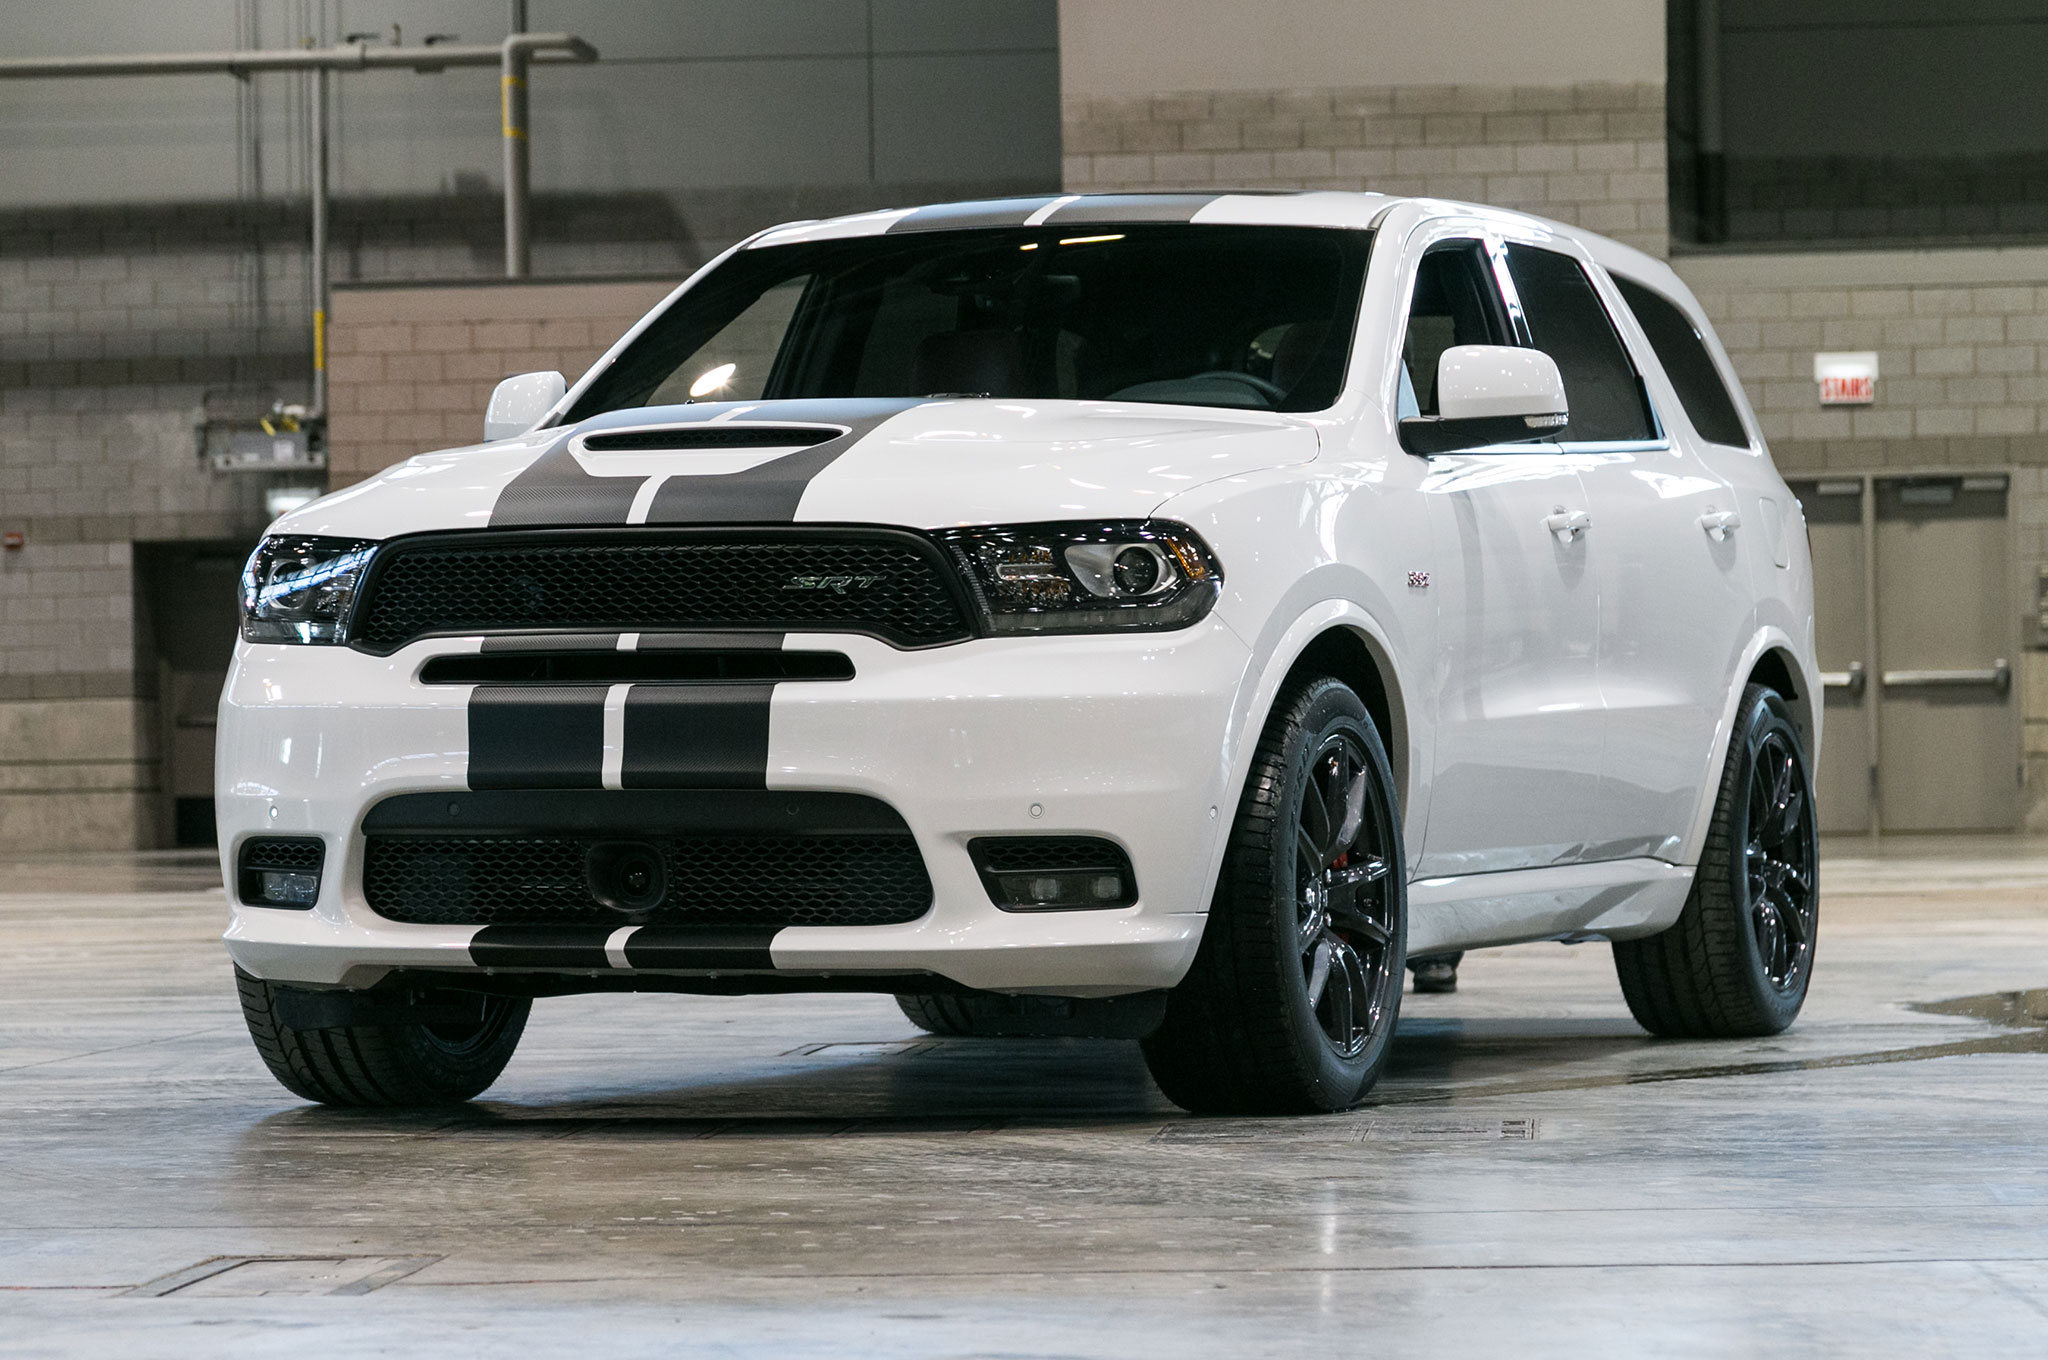 2018 dodge durango r t and srt gets stripes and more mopar performance goodies automobile magazine. Black Bedroom Furniture Sets. Home Design Ideas